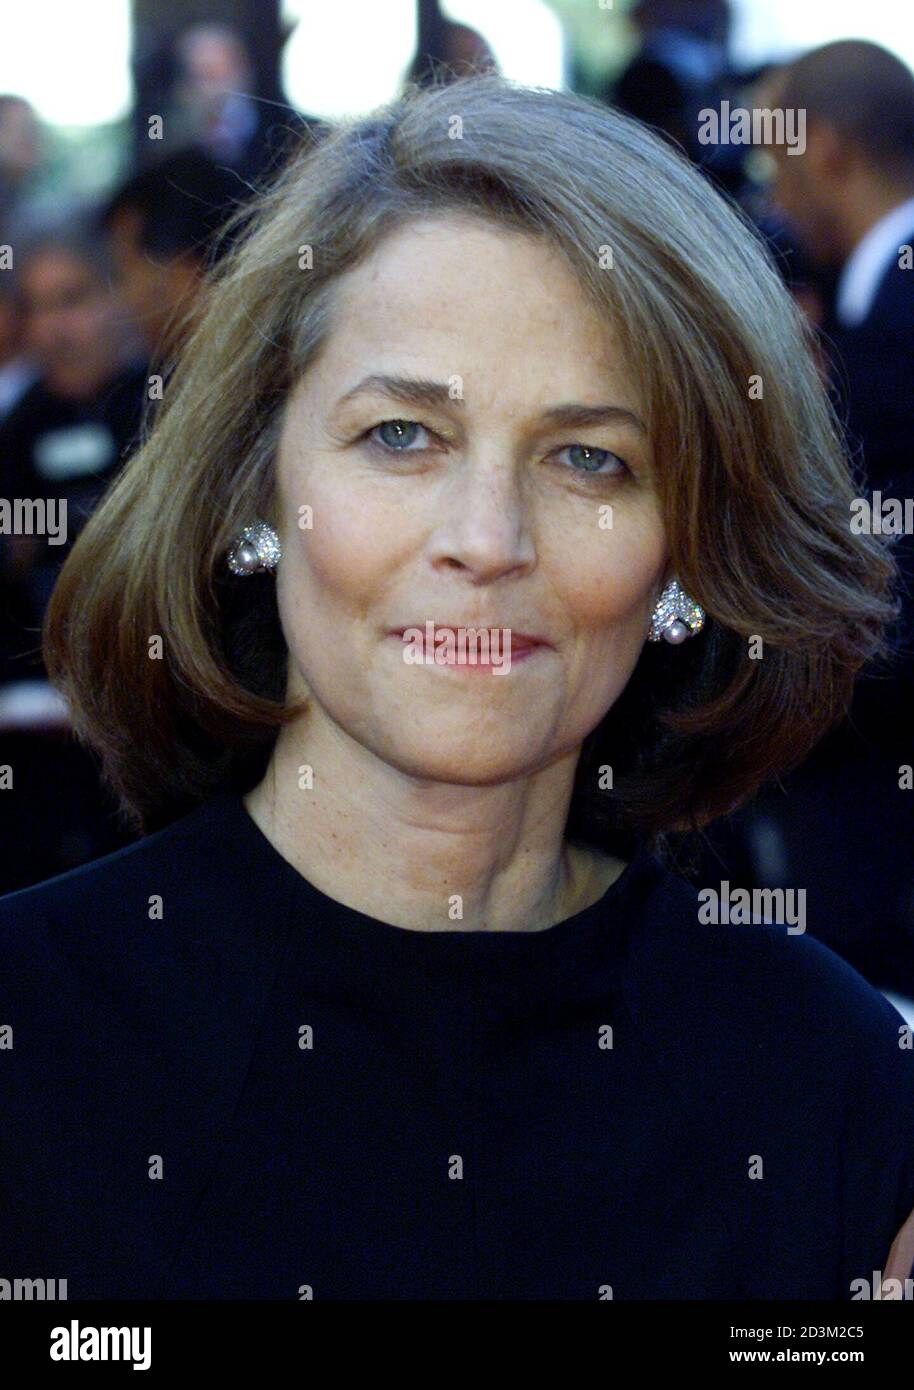 British Actress Charlotte Rampling Smiles During The Red Carpet Arrivals For French Director Francois Dupeyron S